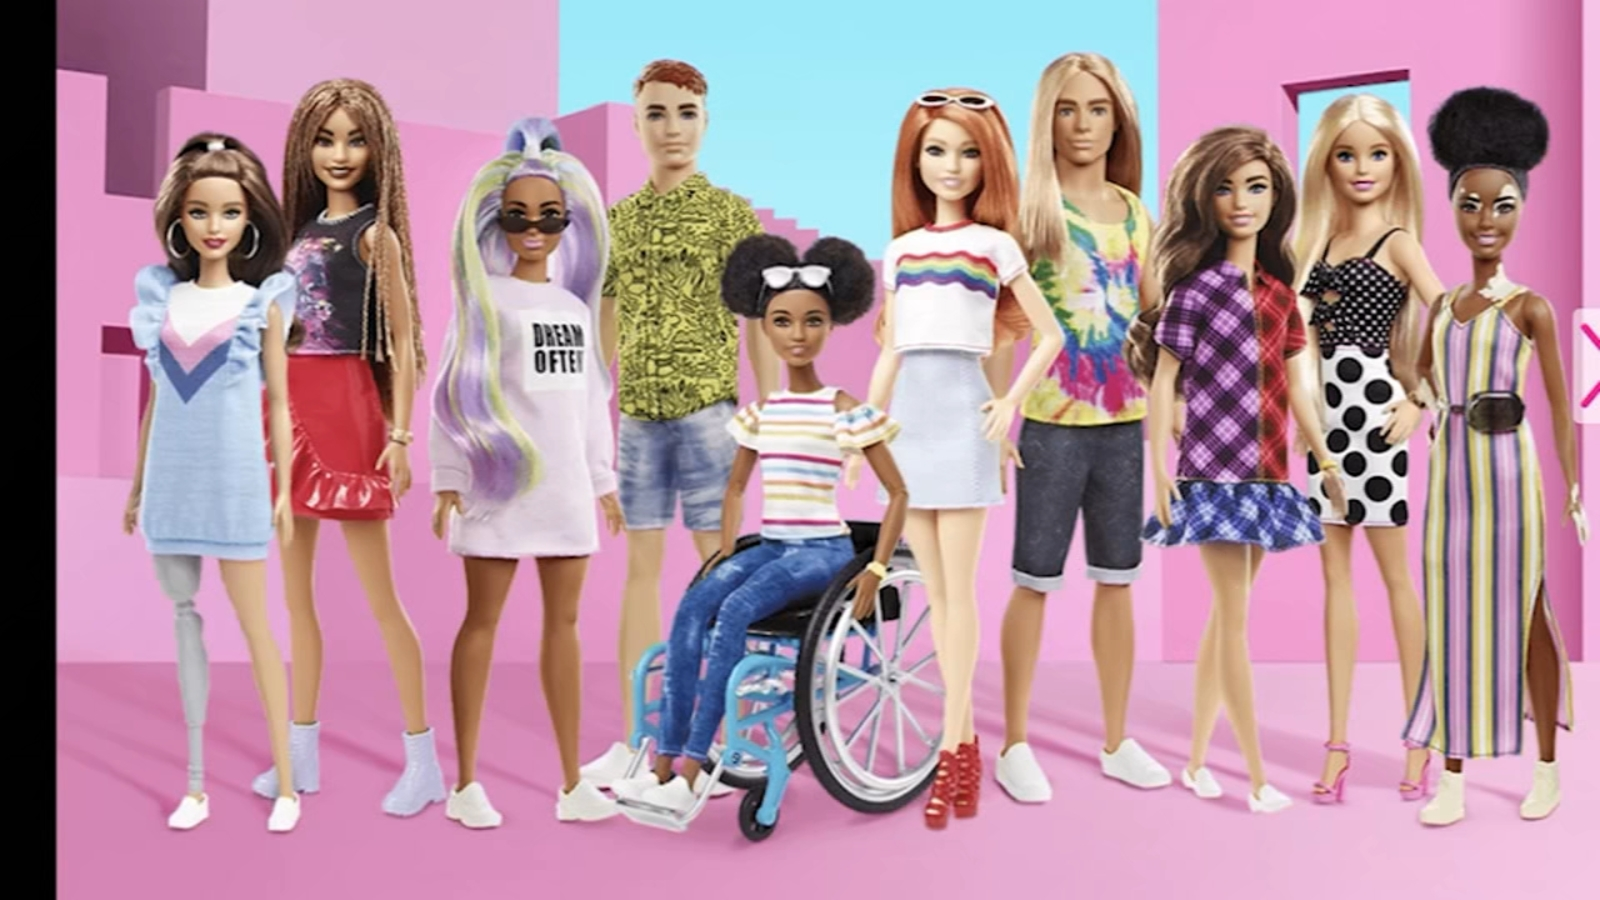 Mattel releasing Barbie dolls with prostheses, no hair, Vitiligo,  wheelhairs and more to reflect customer diversity - ABC7 San Francisco